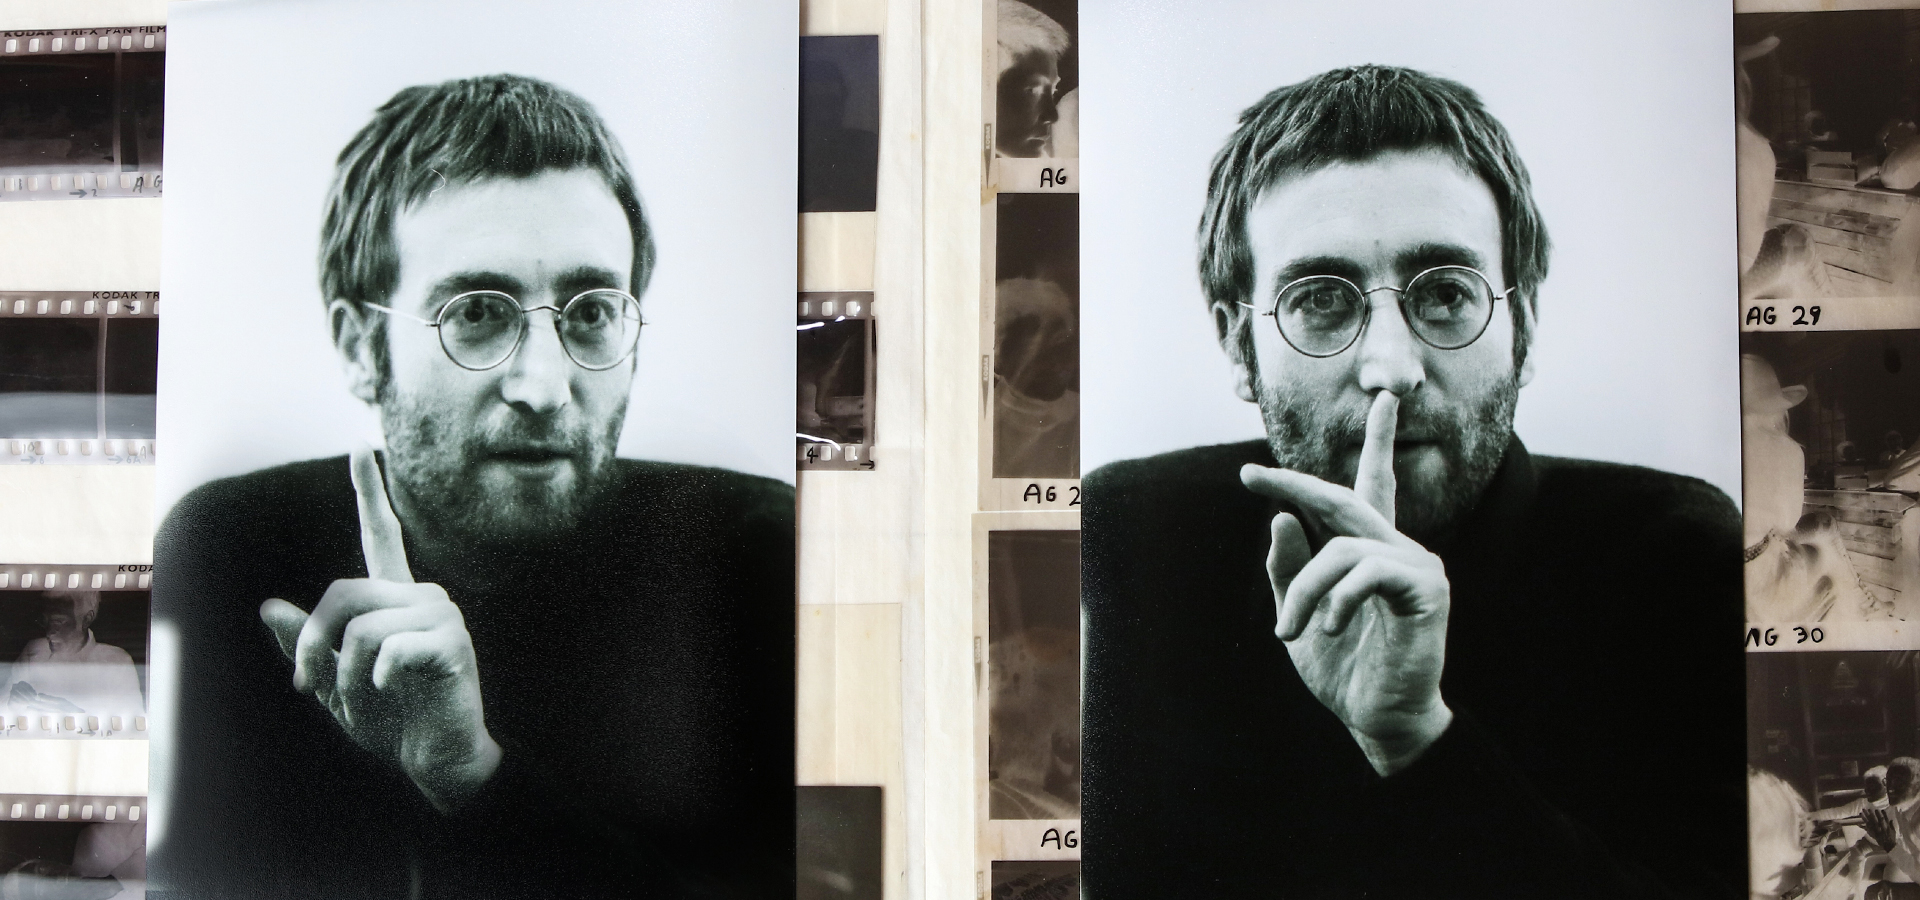 Lennon Legend: rare unseen photographs uncovered